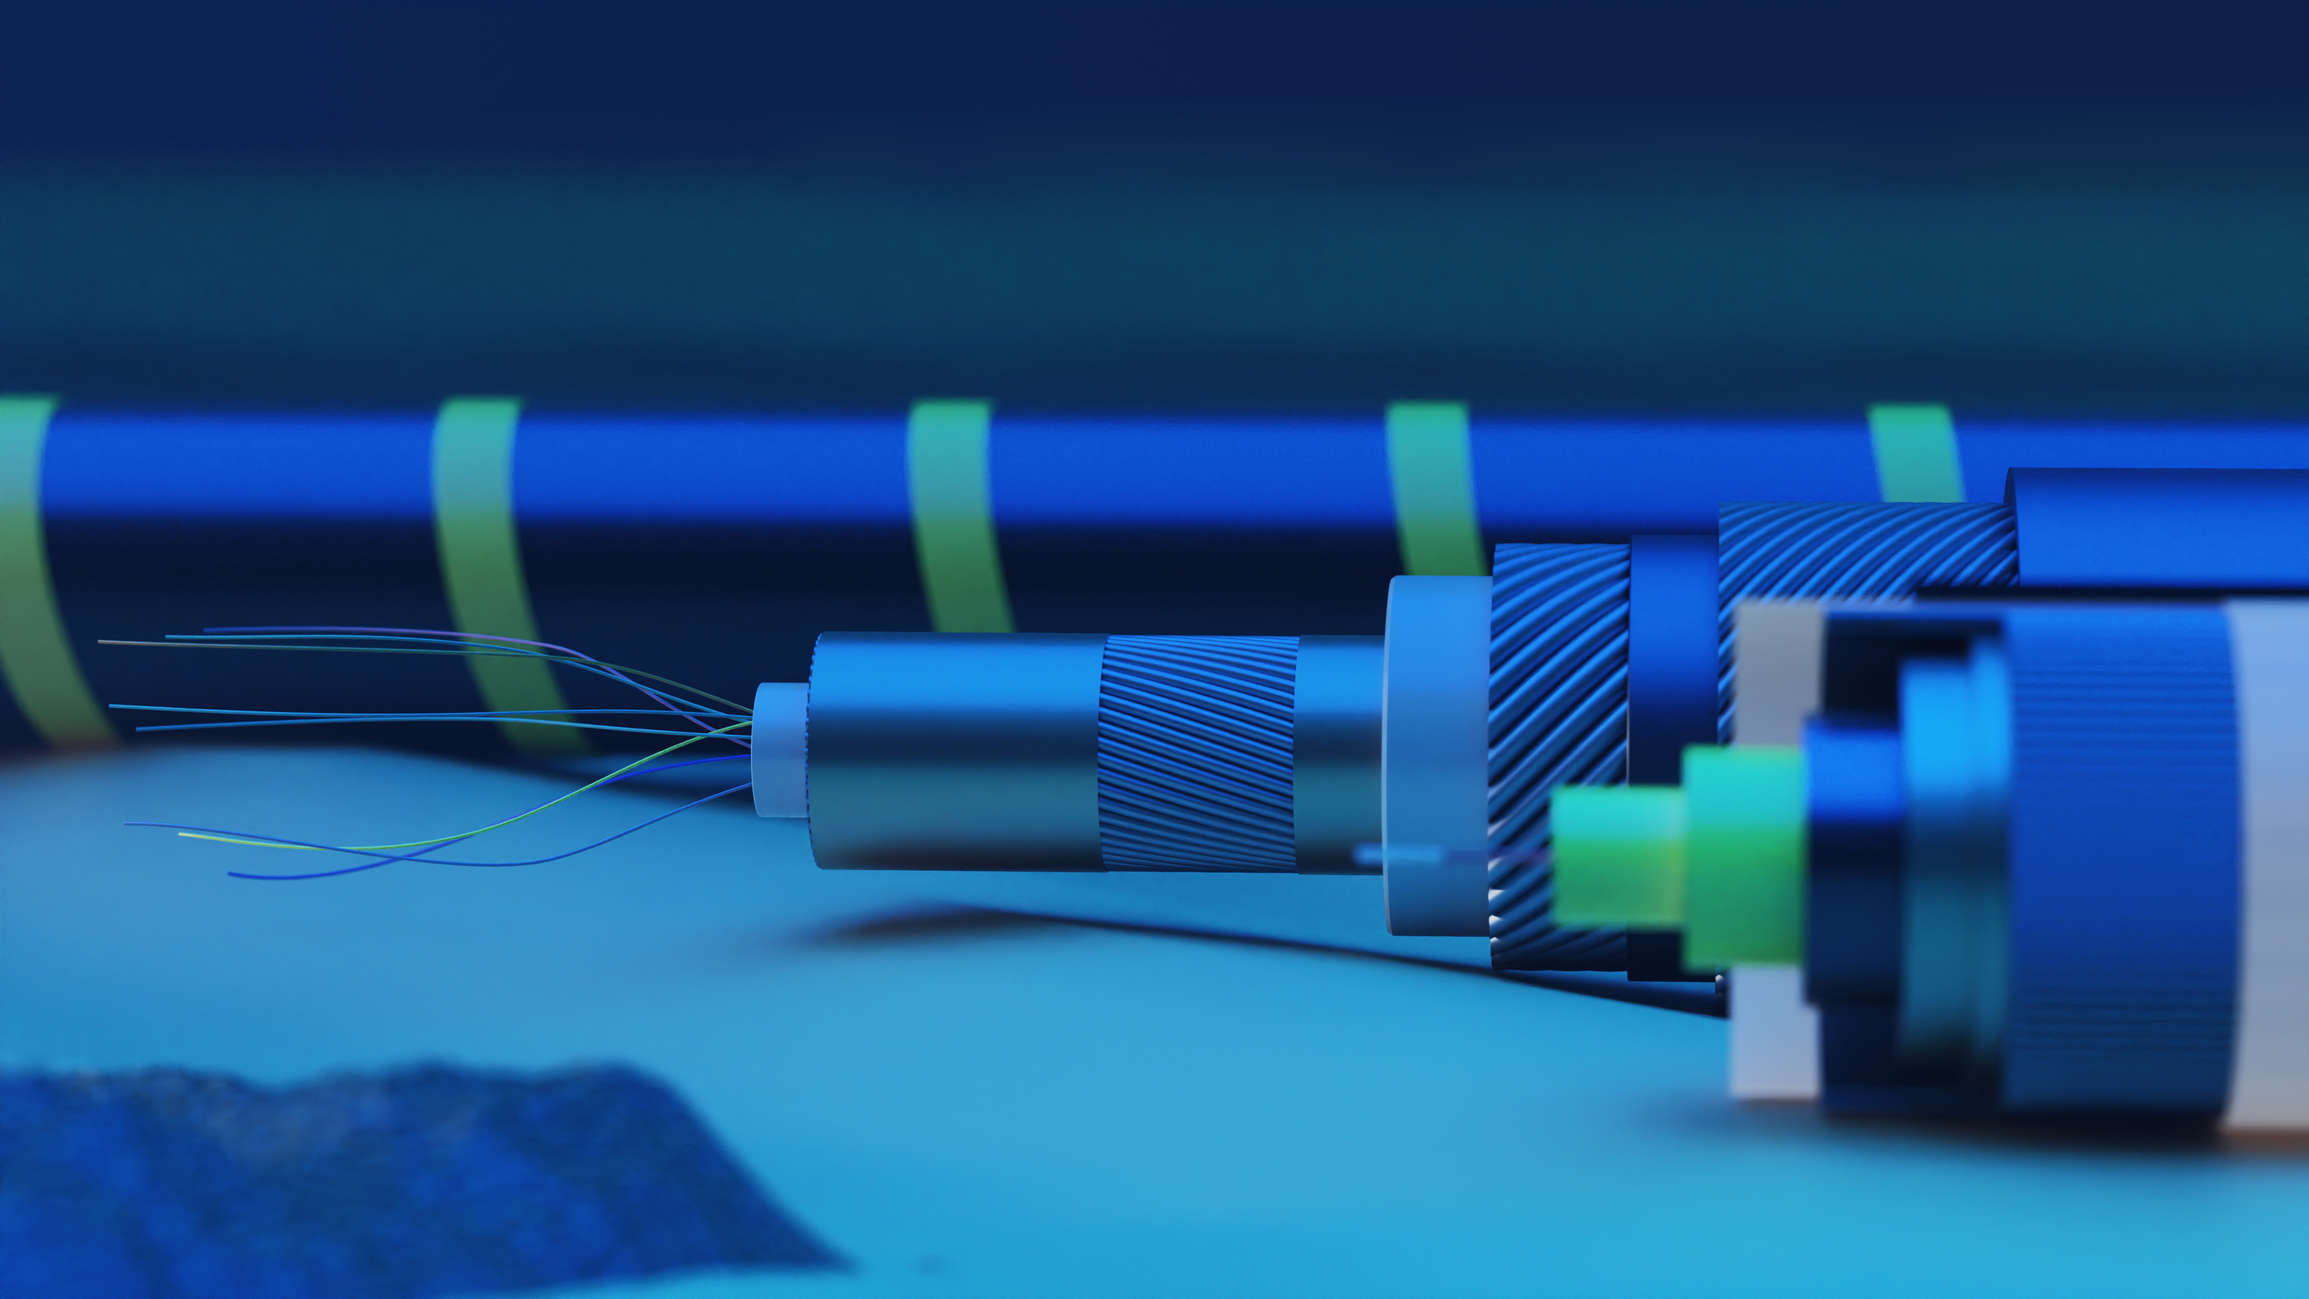 Tech giants appeal to use the undersea cable